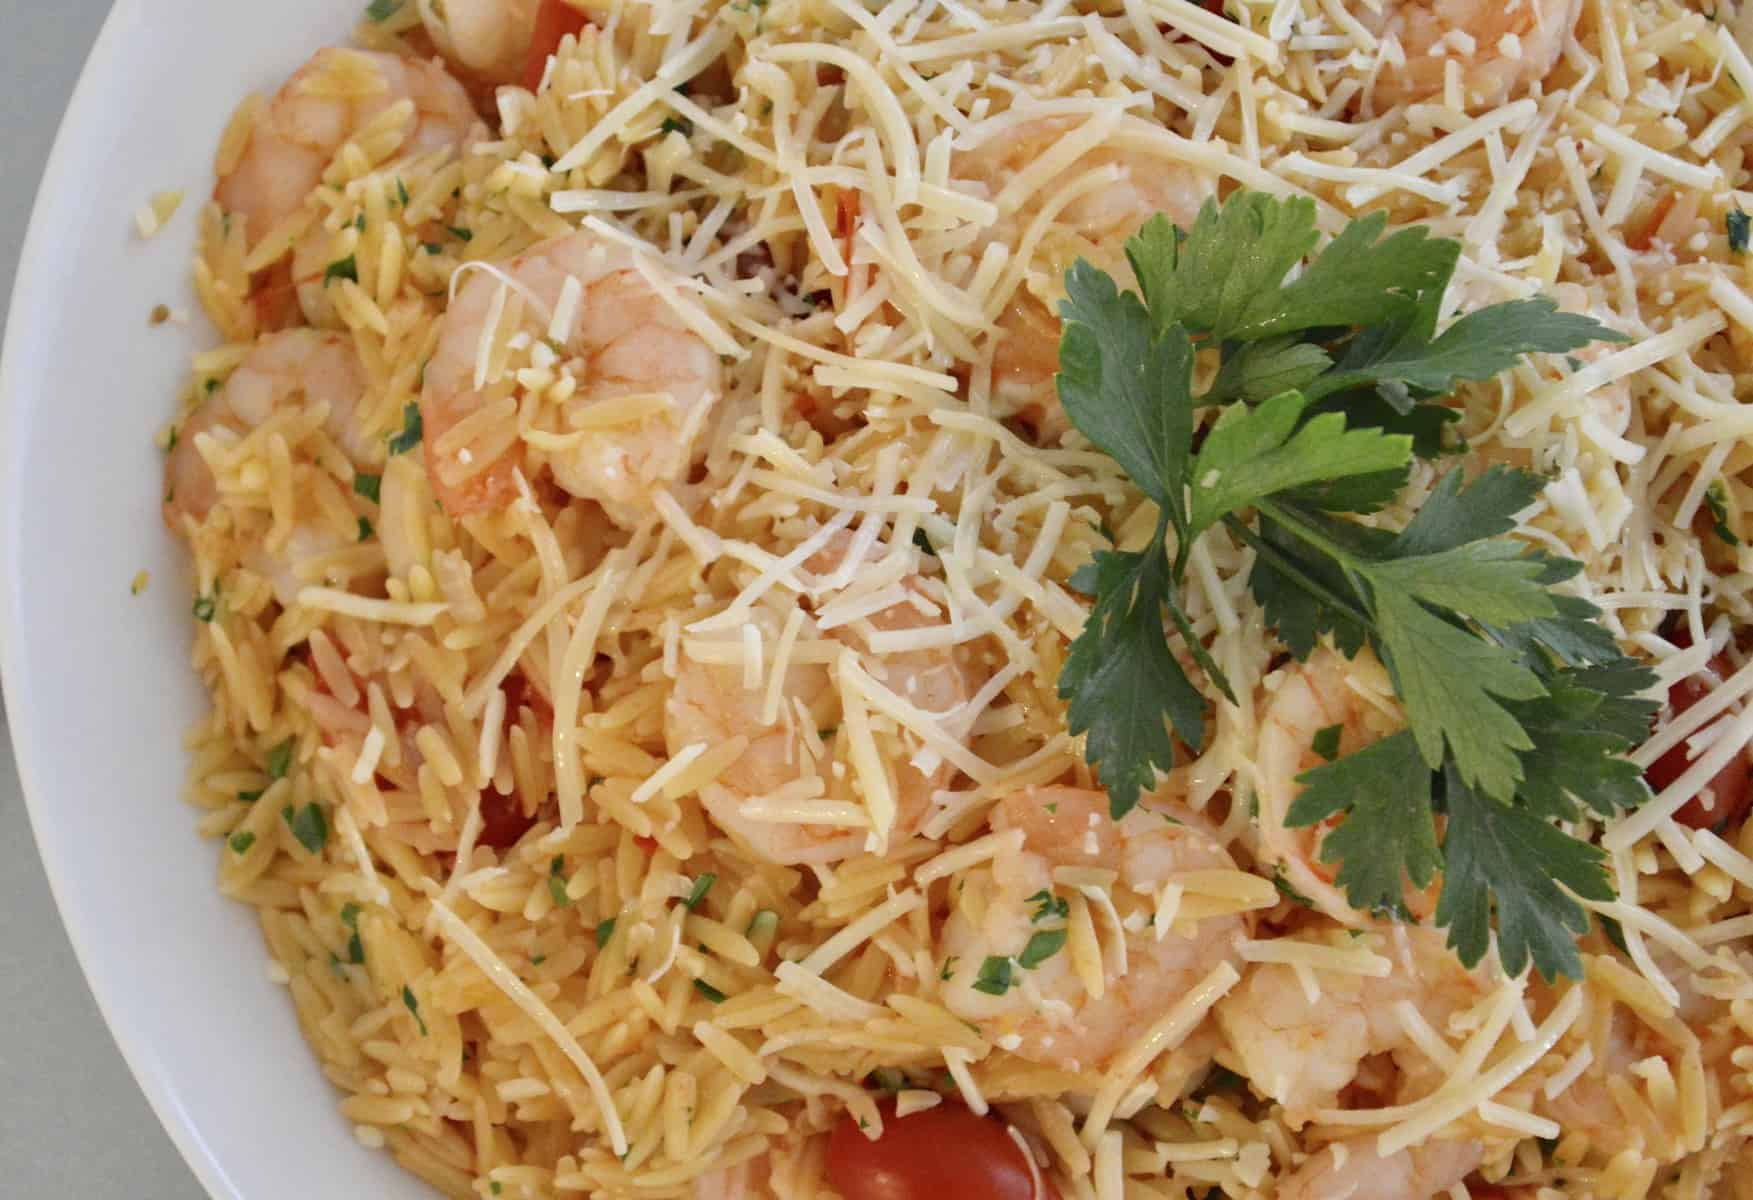 pasta in a white bowl with cherry tomatoes and parsley and parmesan on top.